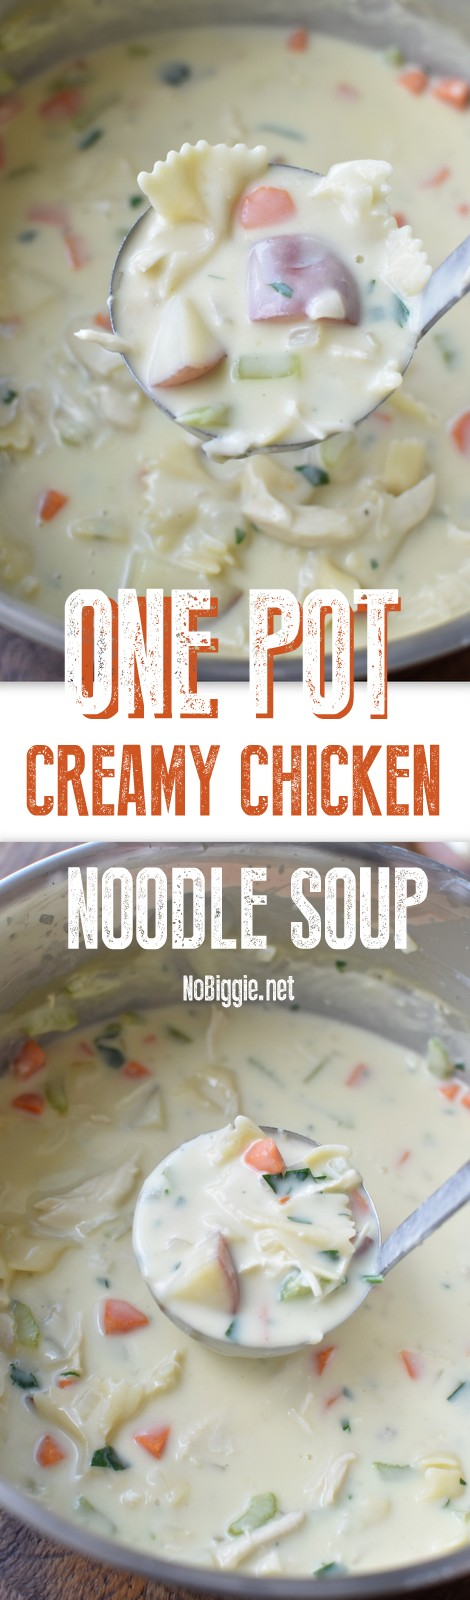 One Pot Creamy Chicken Noodle Soup | NoBiggie.net